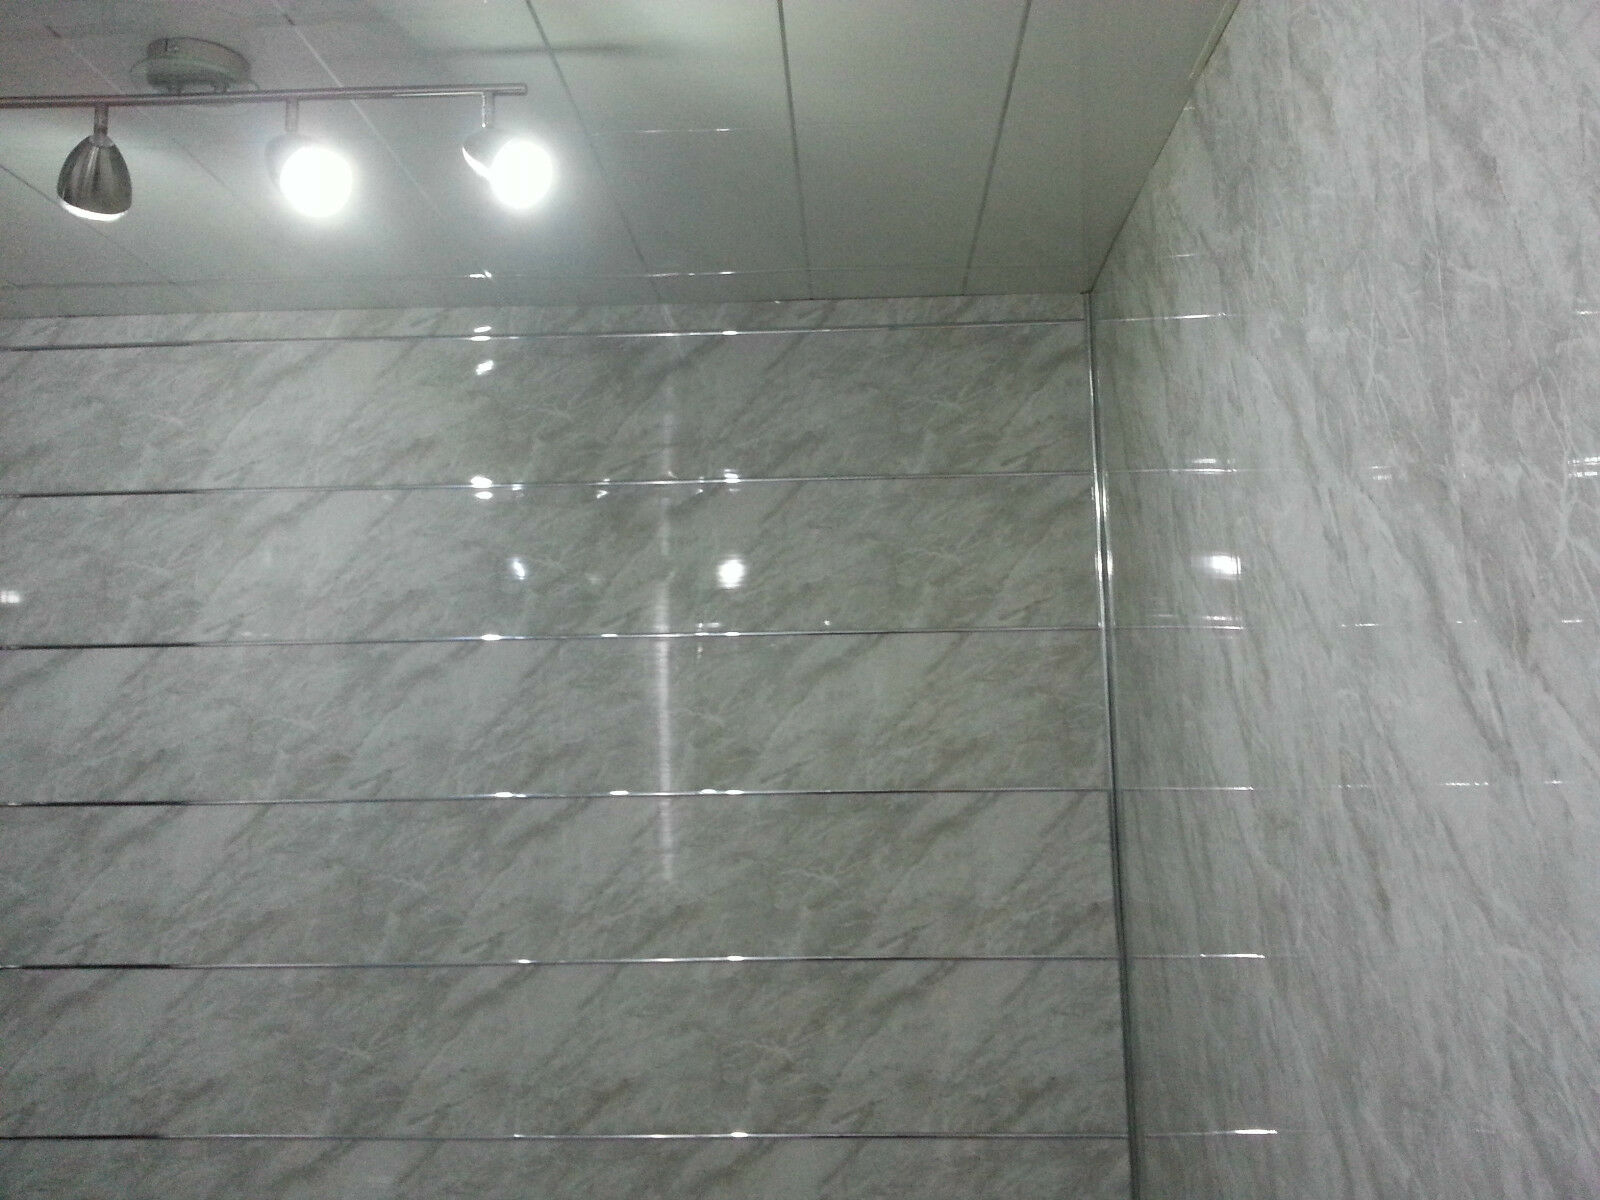 Waterproof bathroom wall panels uk - 3 Slate Grey Marble Effect Pvc Bathroom Wall Cladding